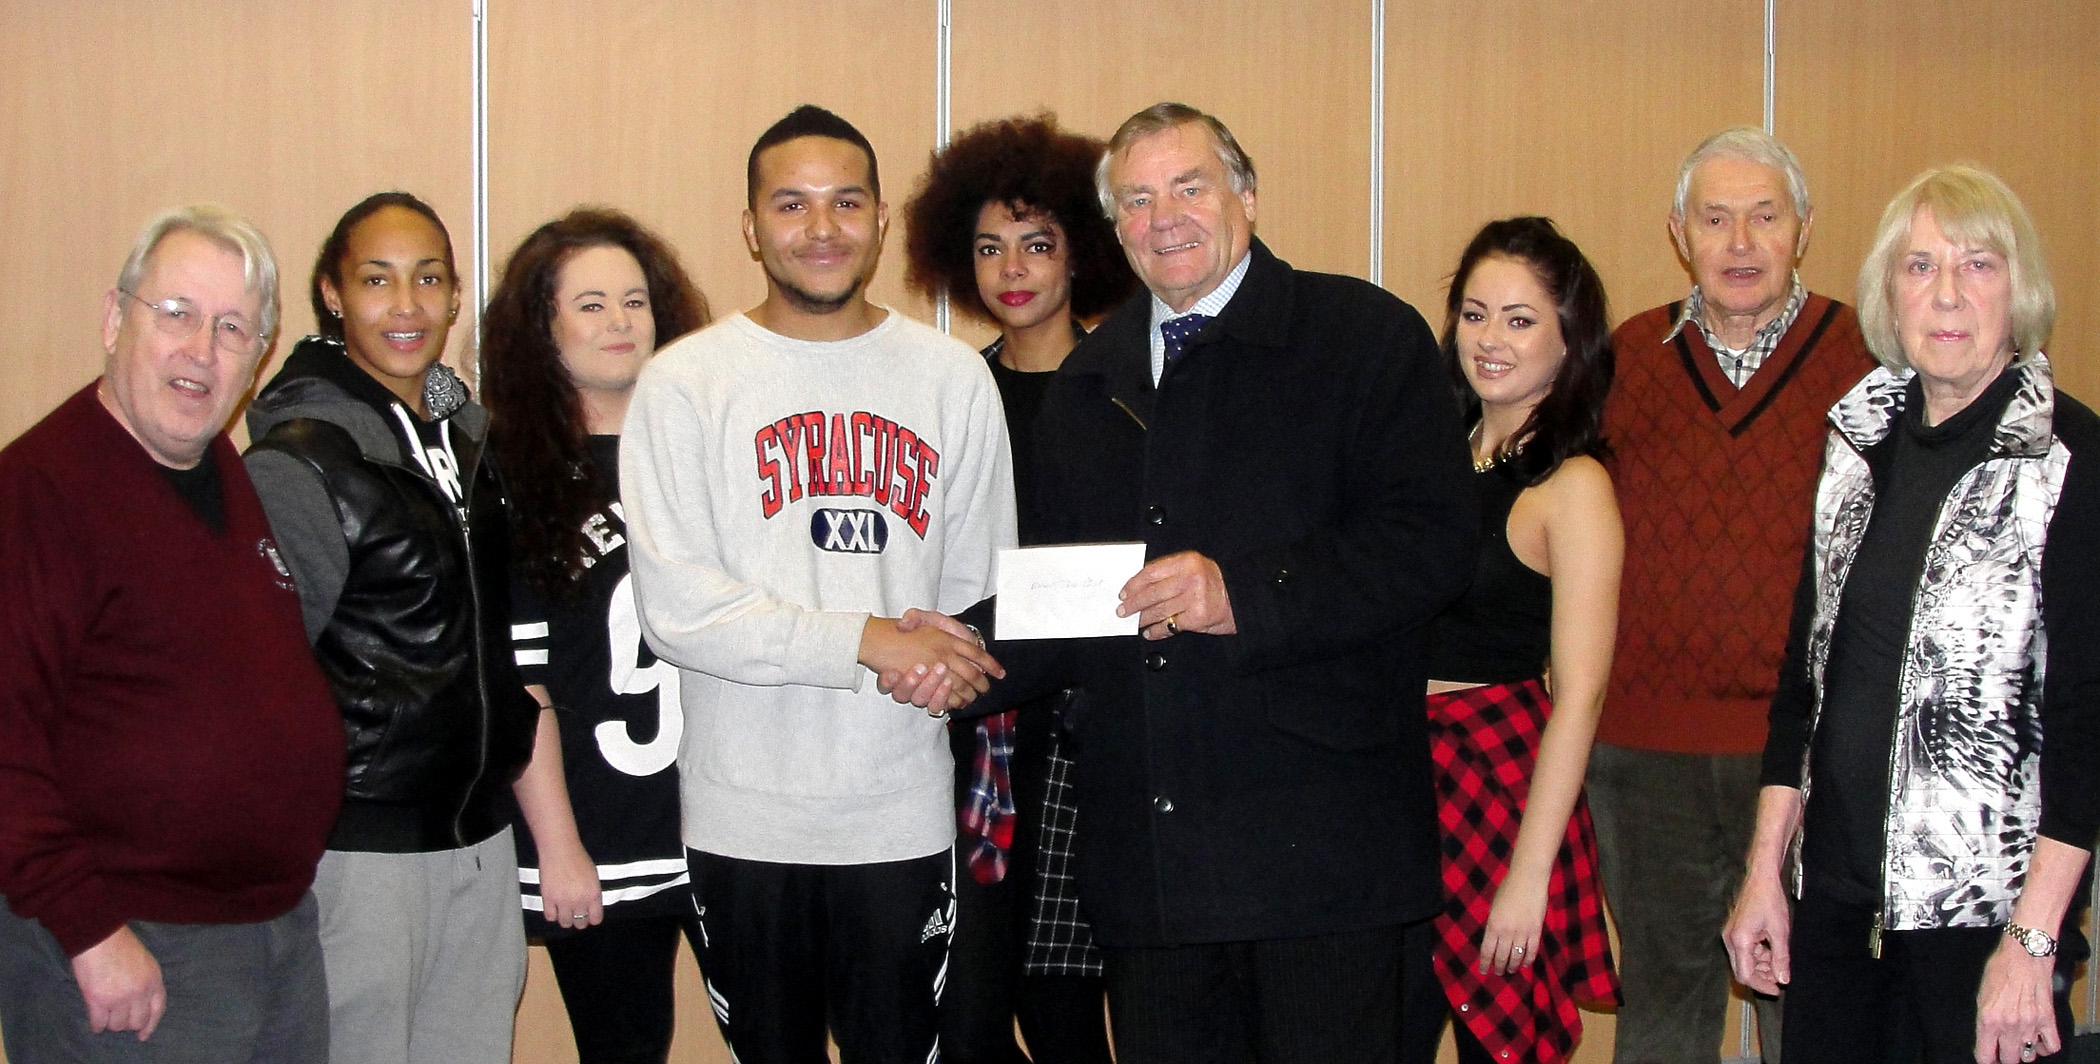 Councillor Eric Carter hands the cheque to Leven Peart of Blackout Dance Group